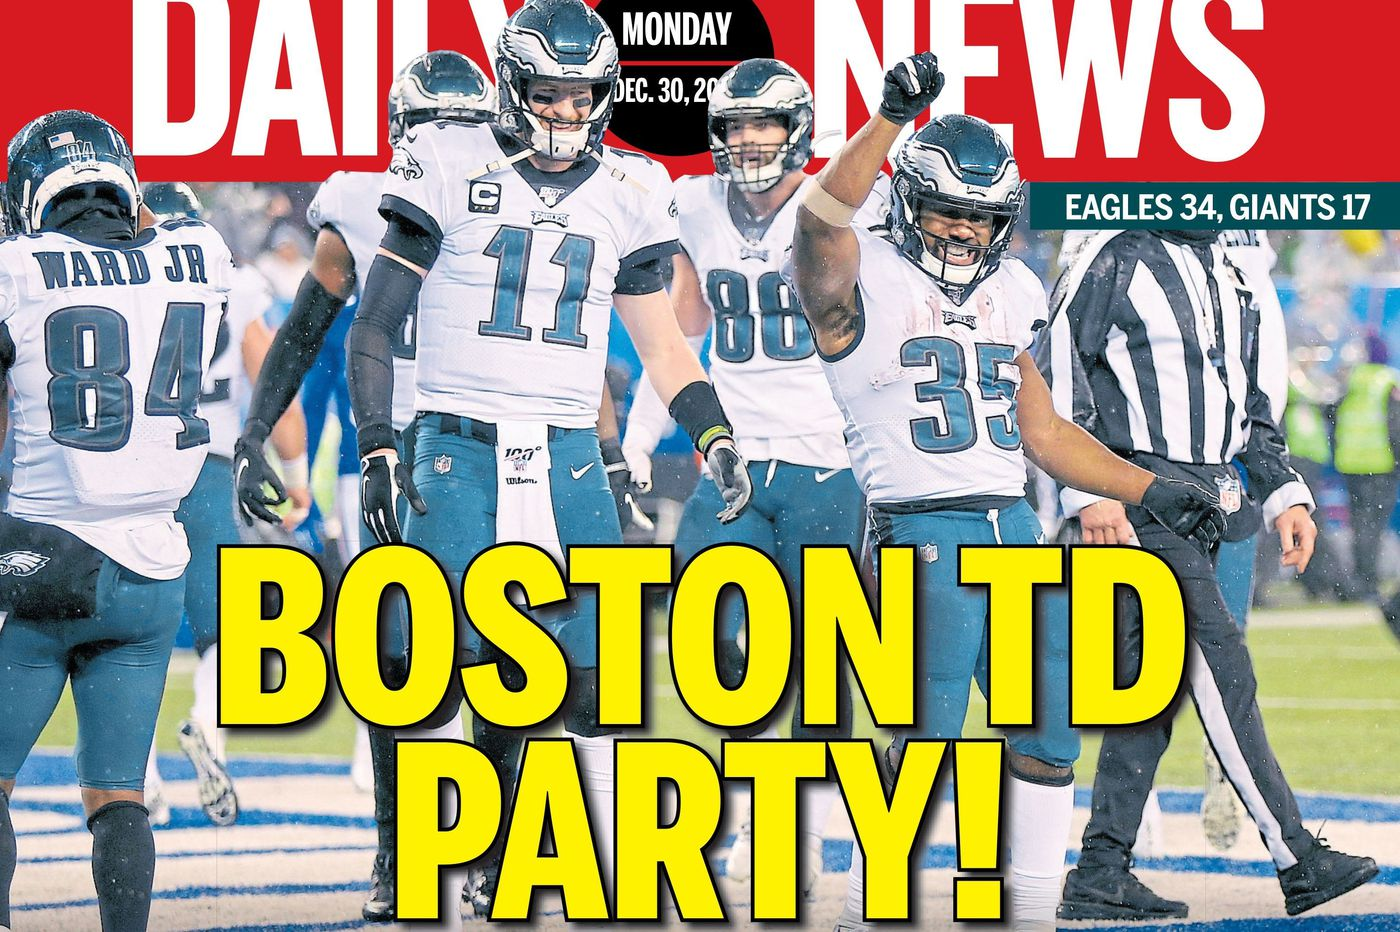 'Boston TD Party': The Inquirer and Daily News covers on the Eagles' NFC East-clinching win over the Giants